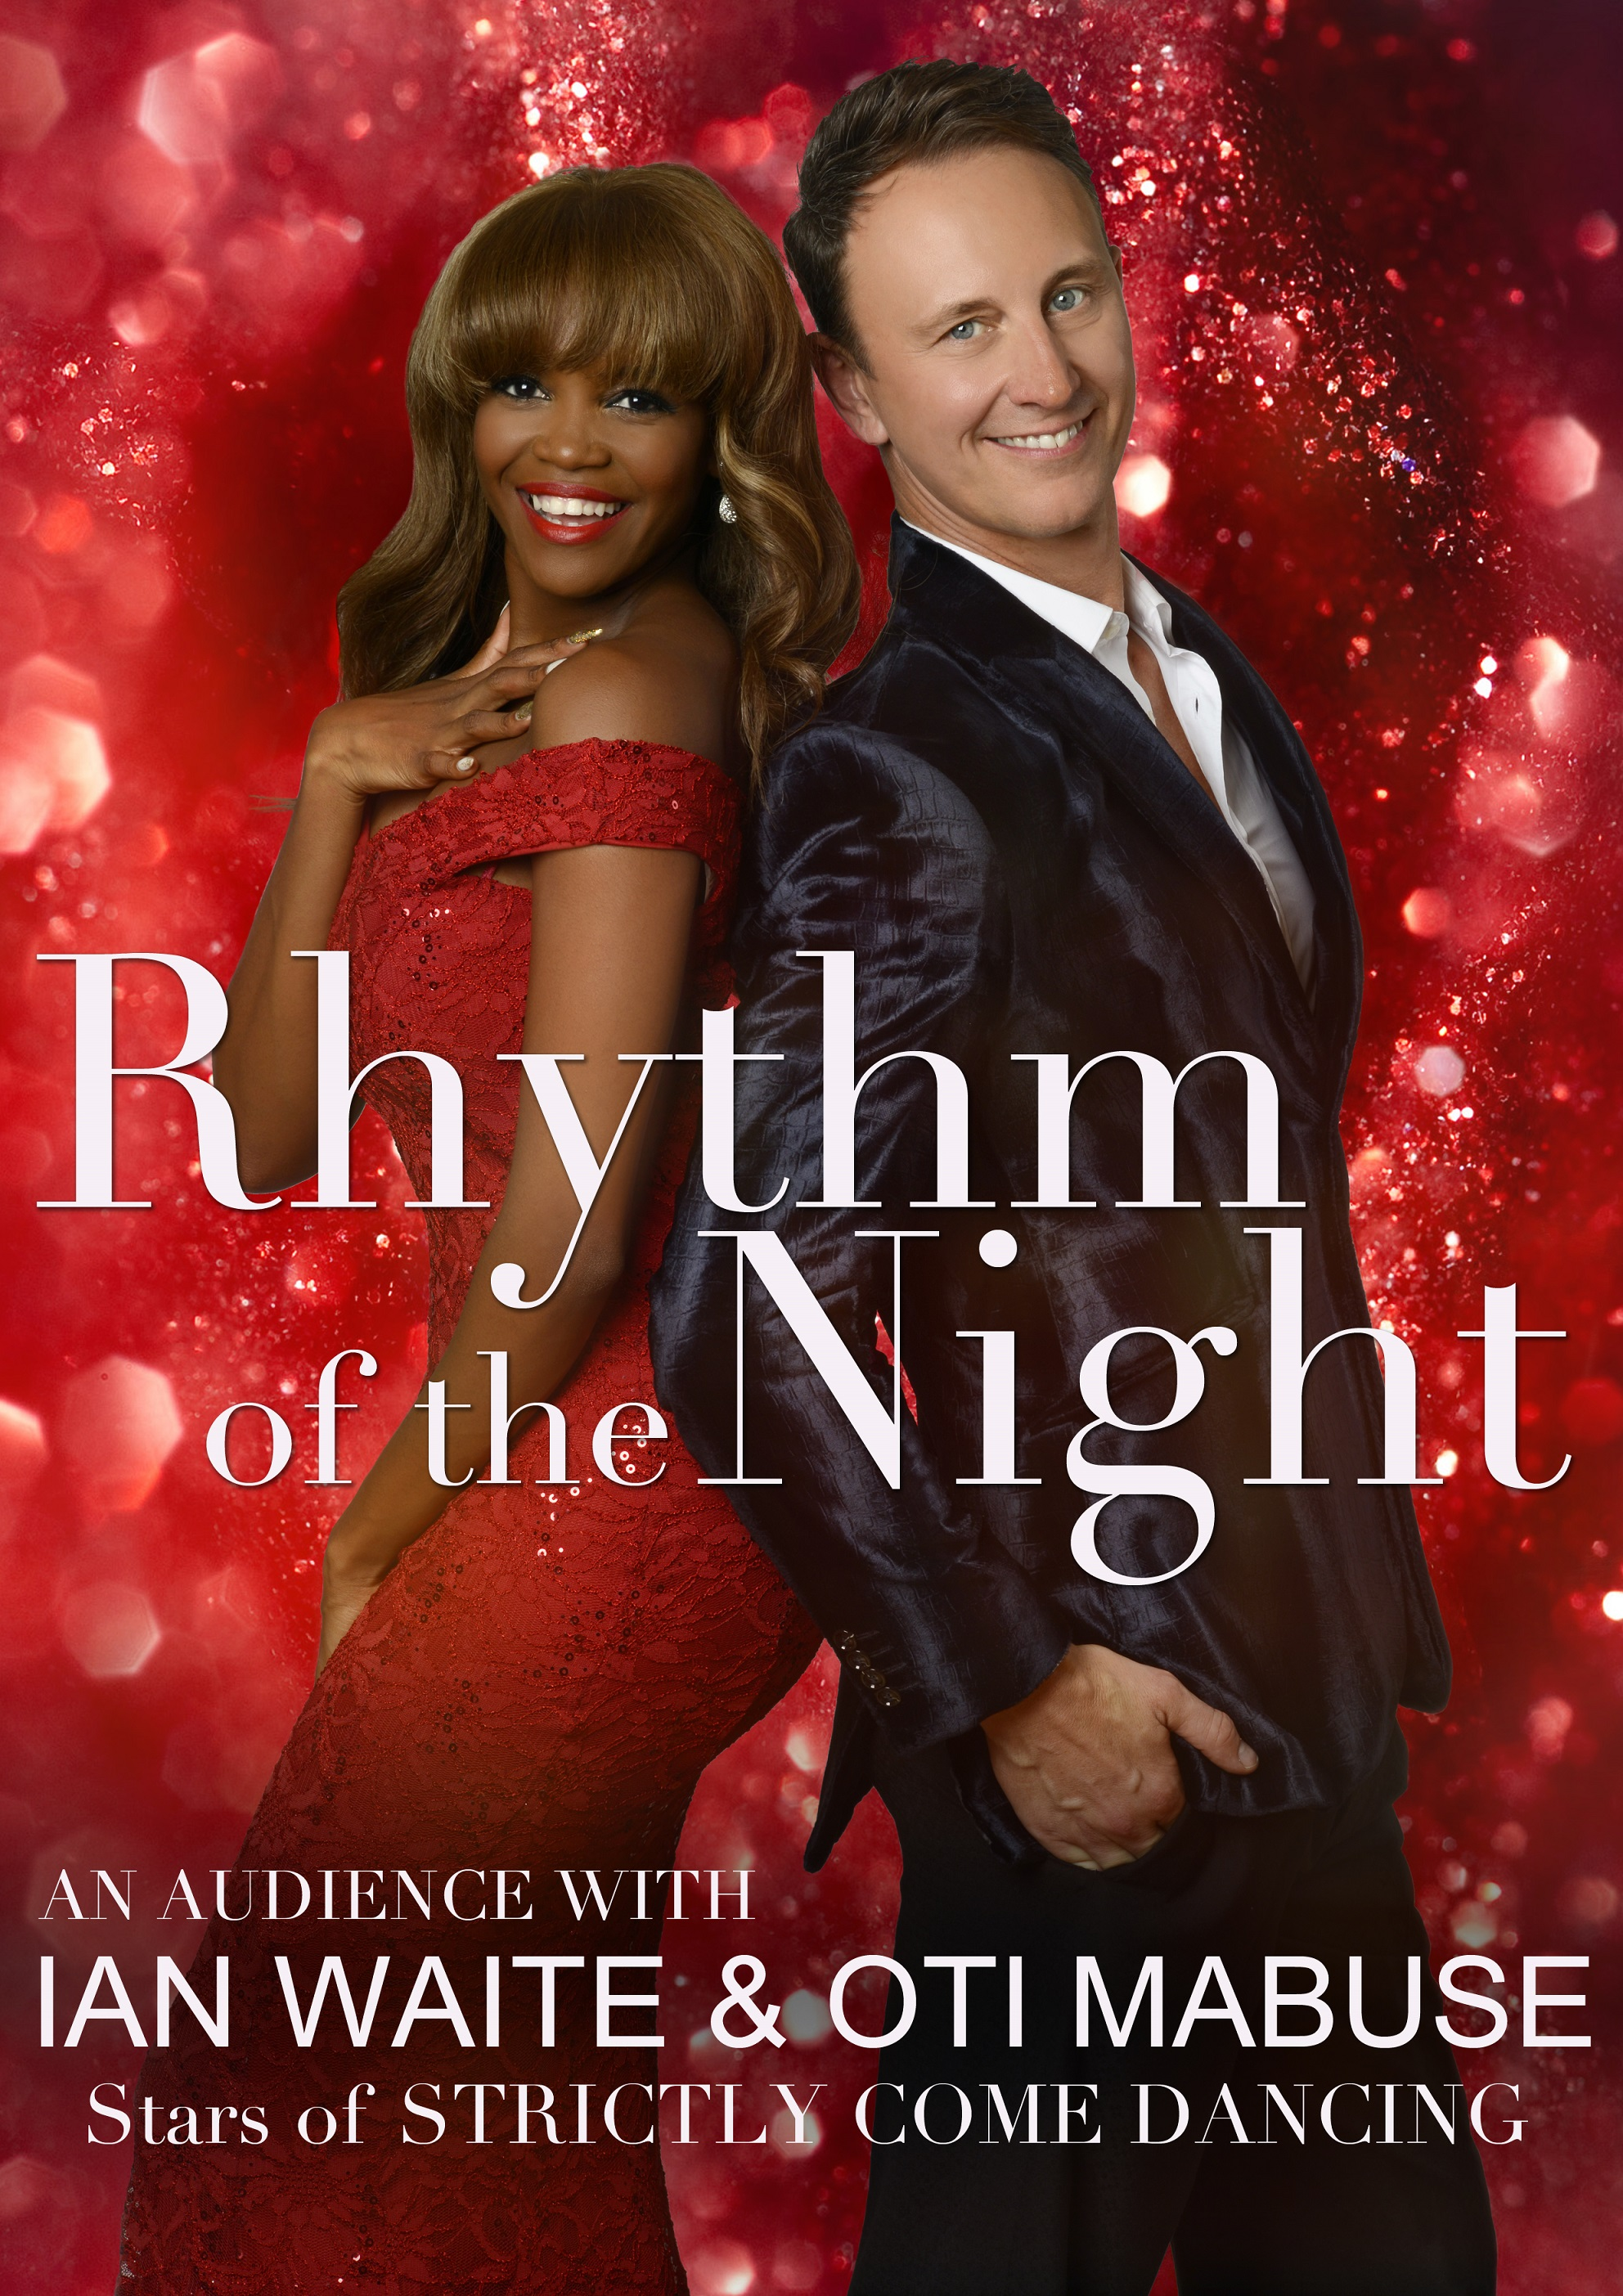 AN AUDIENCE WITH IAN WAITE & OTI MABUSE